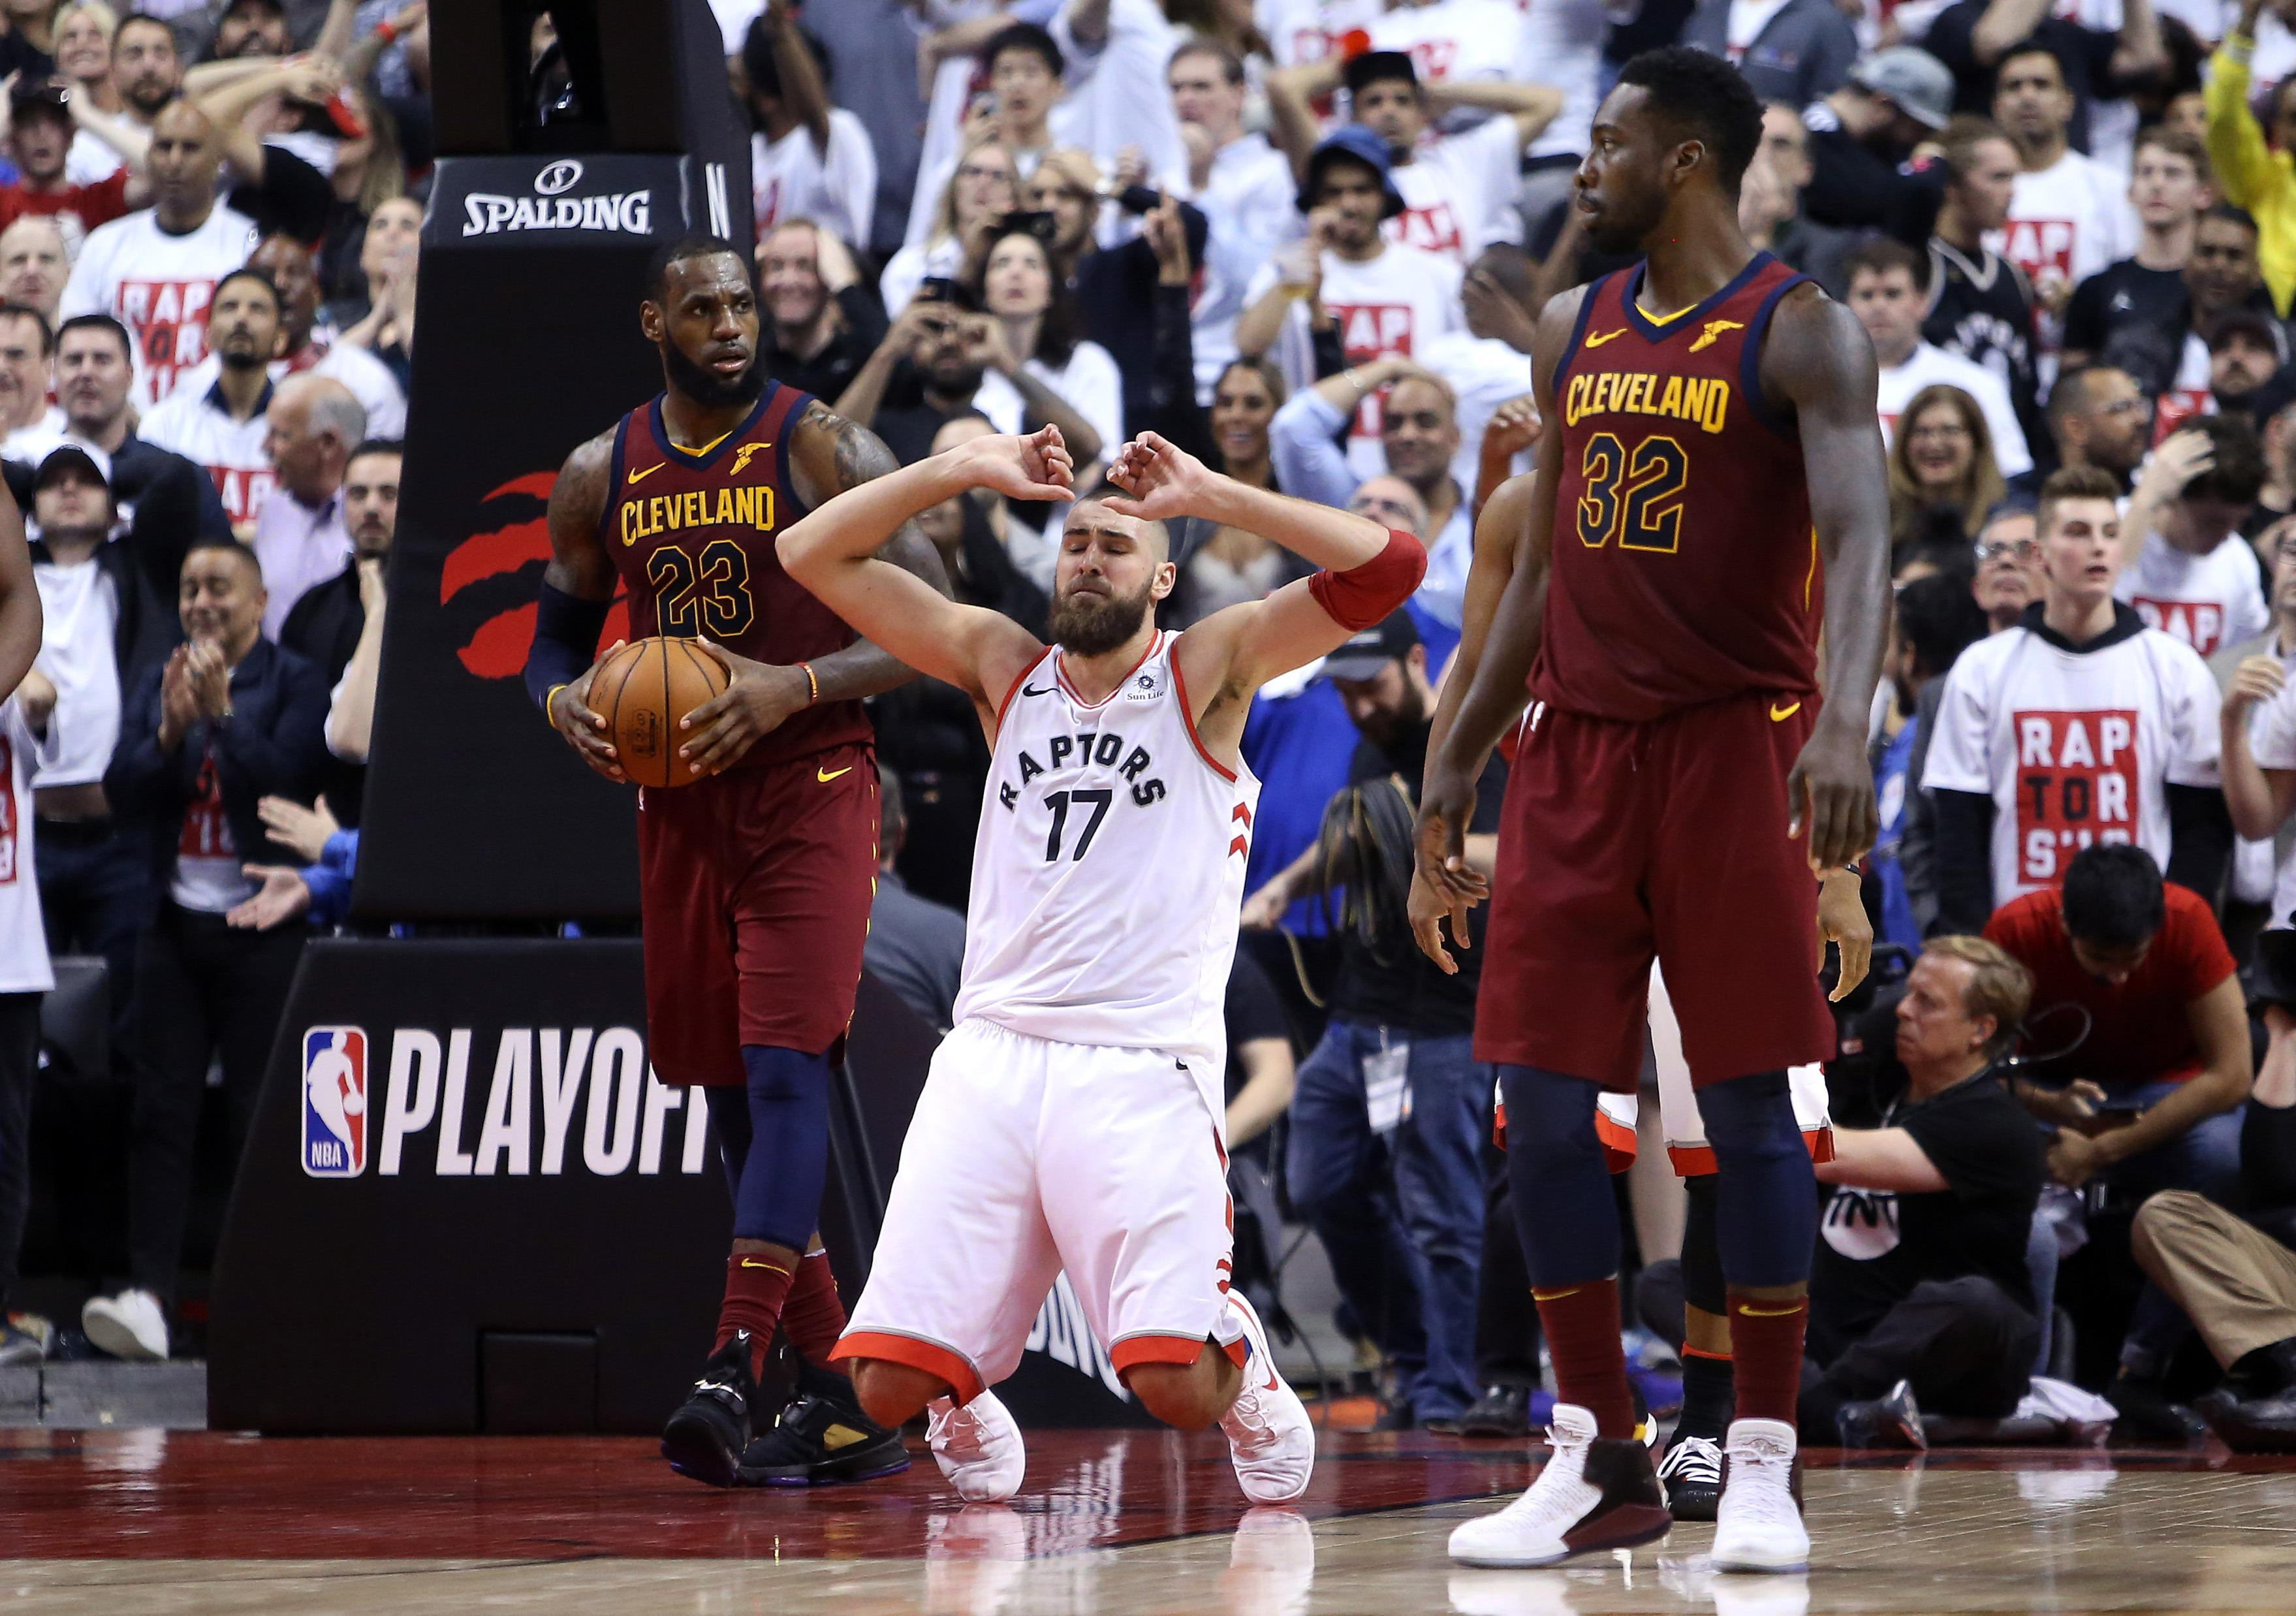 TORONTO, ON - MAY 01:  Jonas Valanciunas #17 of the Toronto Raptors falls to his knees after missing a basket in the second half of Game One of the Eastern Conference Semifinals against the Cleveland Cavaliers during the 2018 NBA Playoffs at Air Canada Centre on May 1, 2018 in Toronto, Canada.  NOTE TO USER: User expressly acknowledges and agrees that, by downloading and or using this photograph, User is consenting to the terms and conditions of the Getty Images License Agreement.  (Photo by Vaughn Ridley/Getty Images)